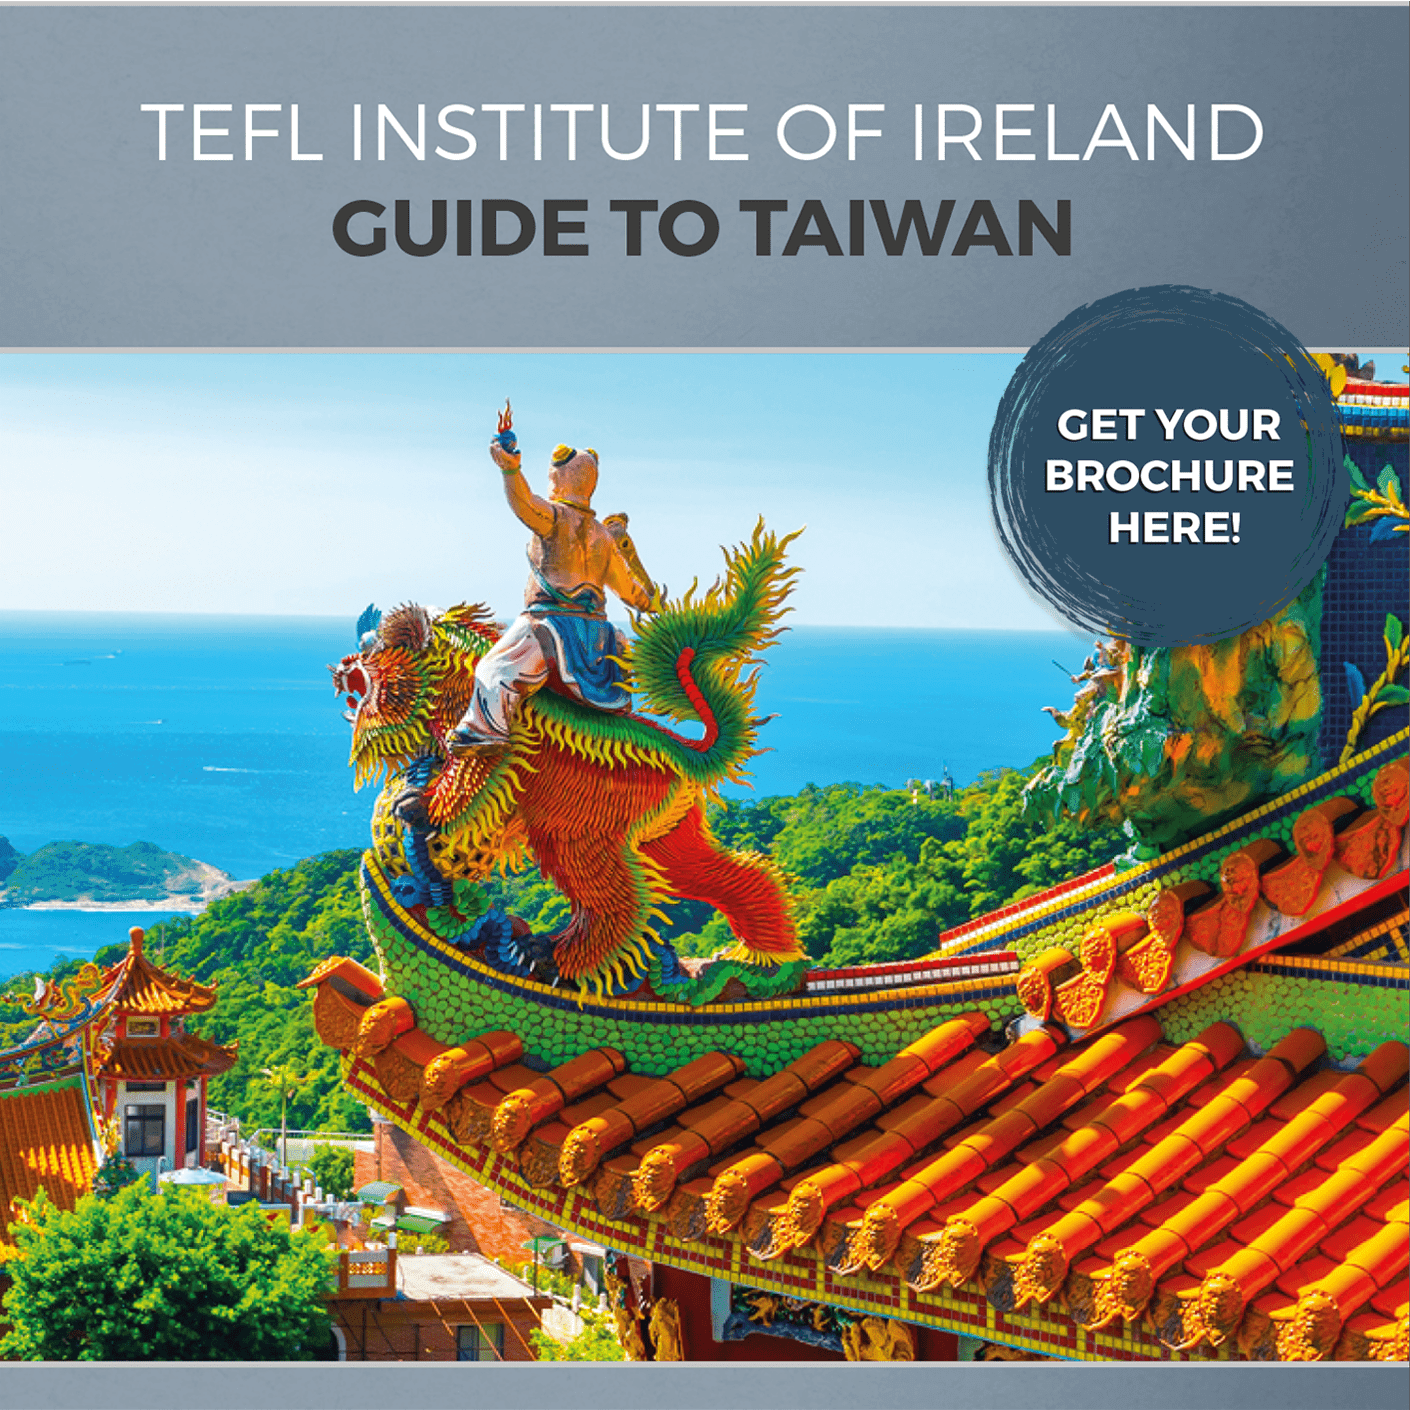 Image for Teach English in Taiwan and become a world-class teacher.